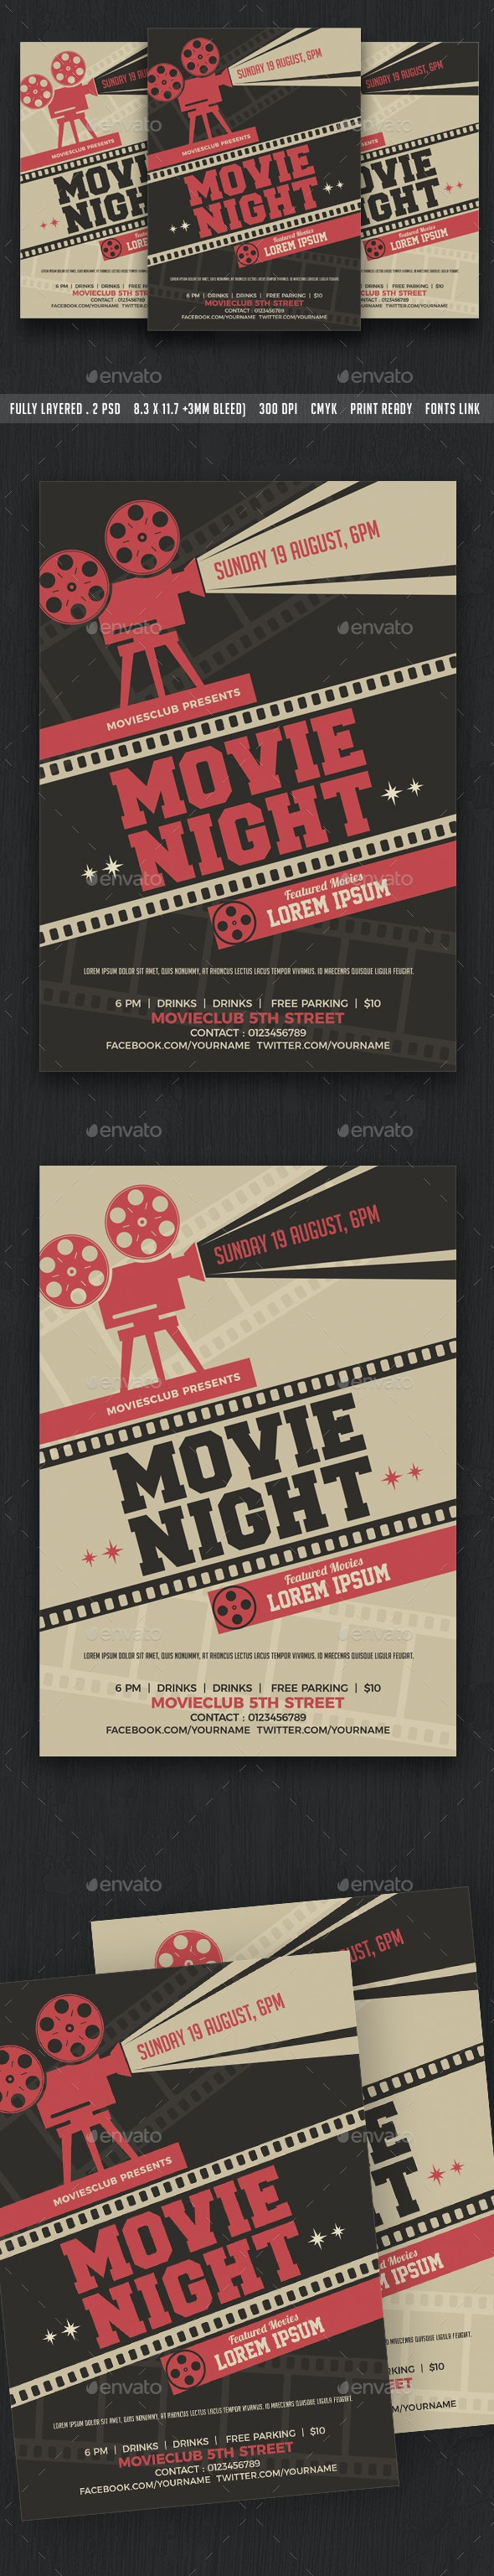 Movie Night / Movie Time Flyer - Clubs & Parties Events